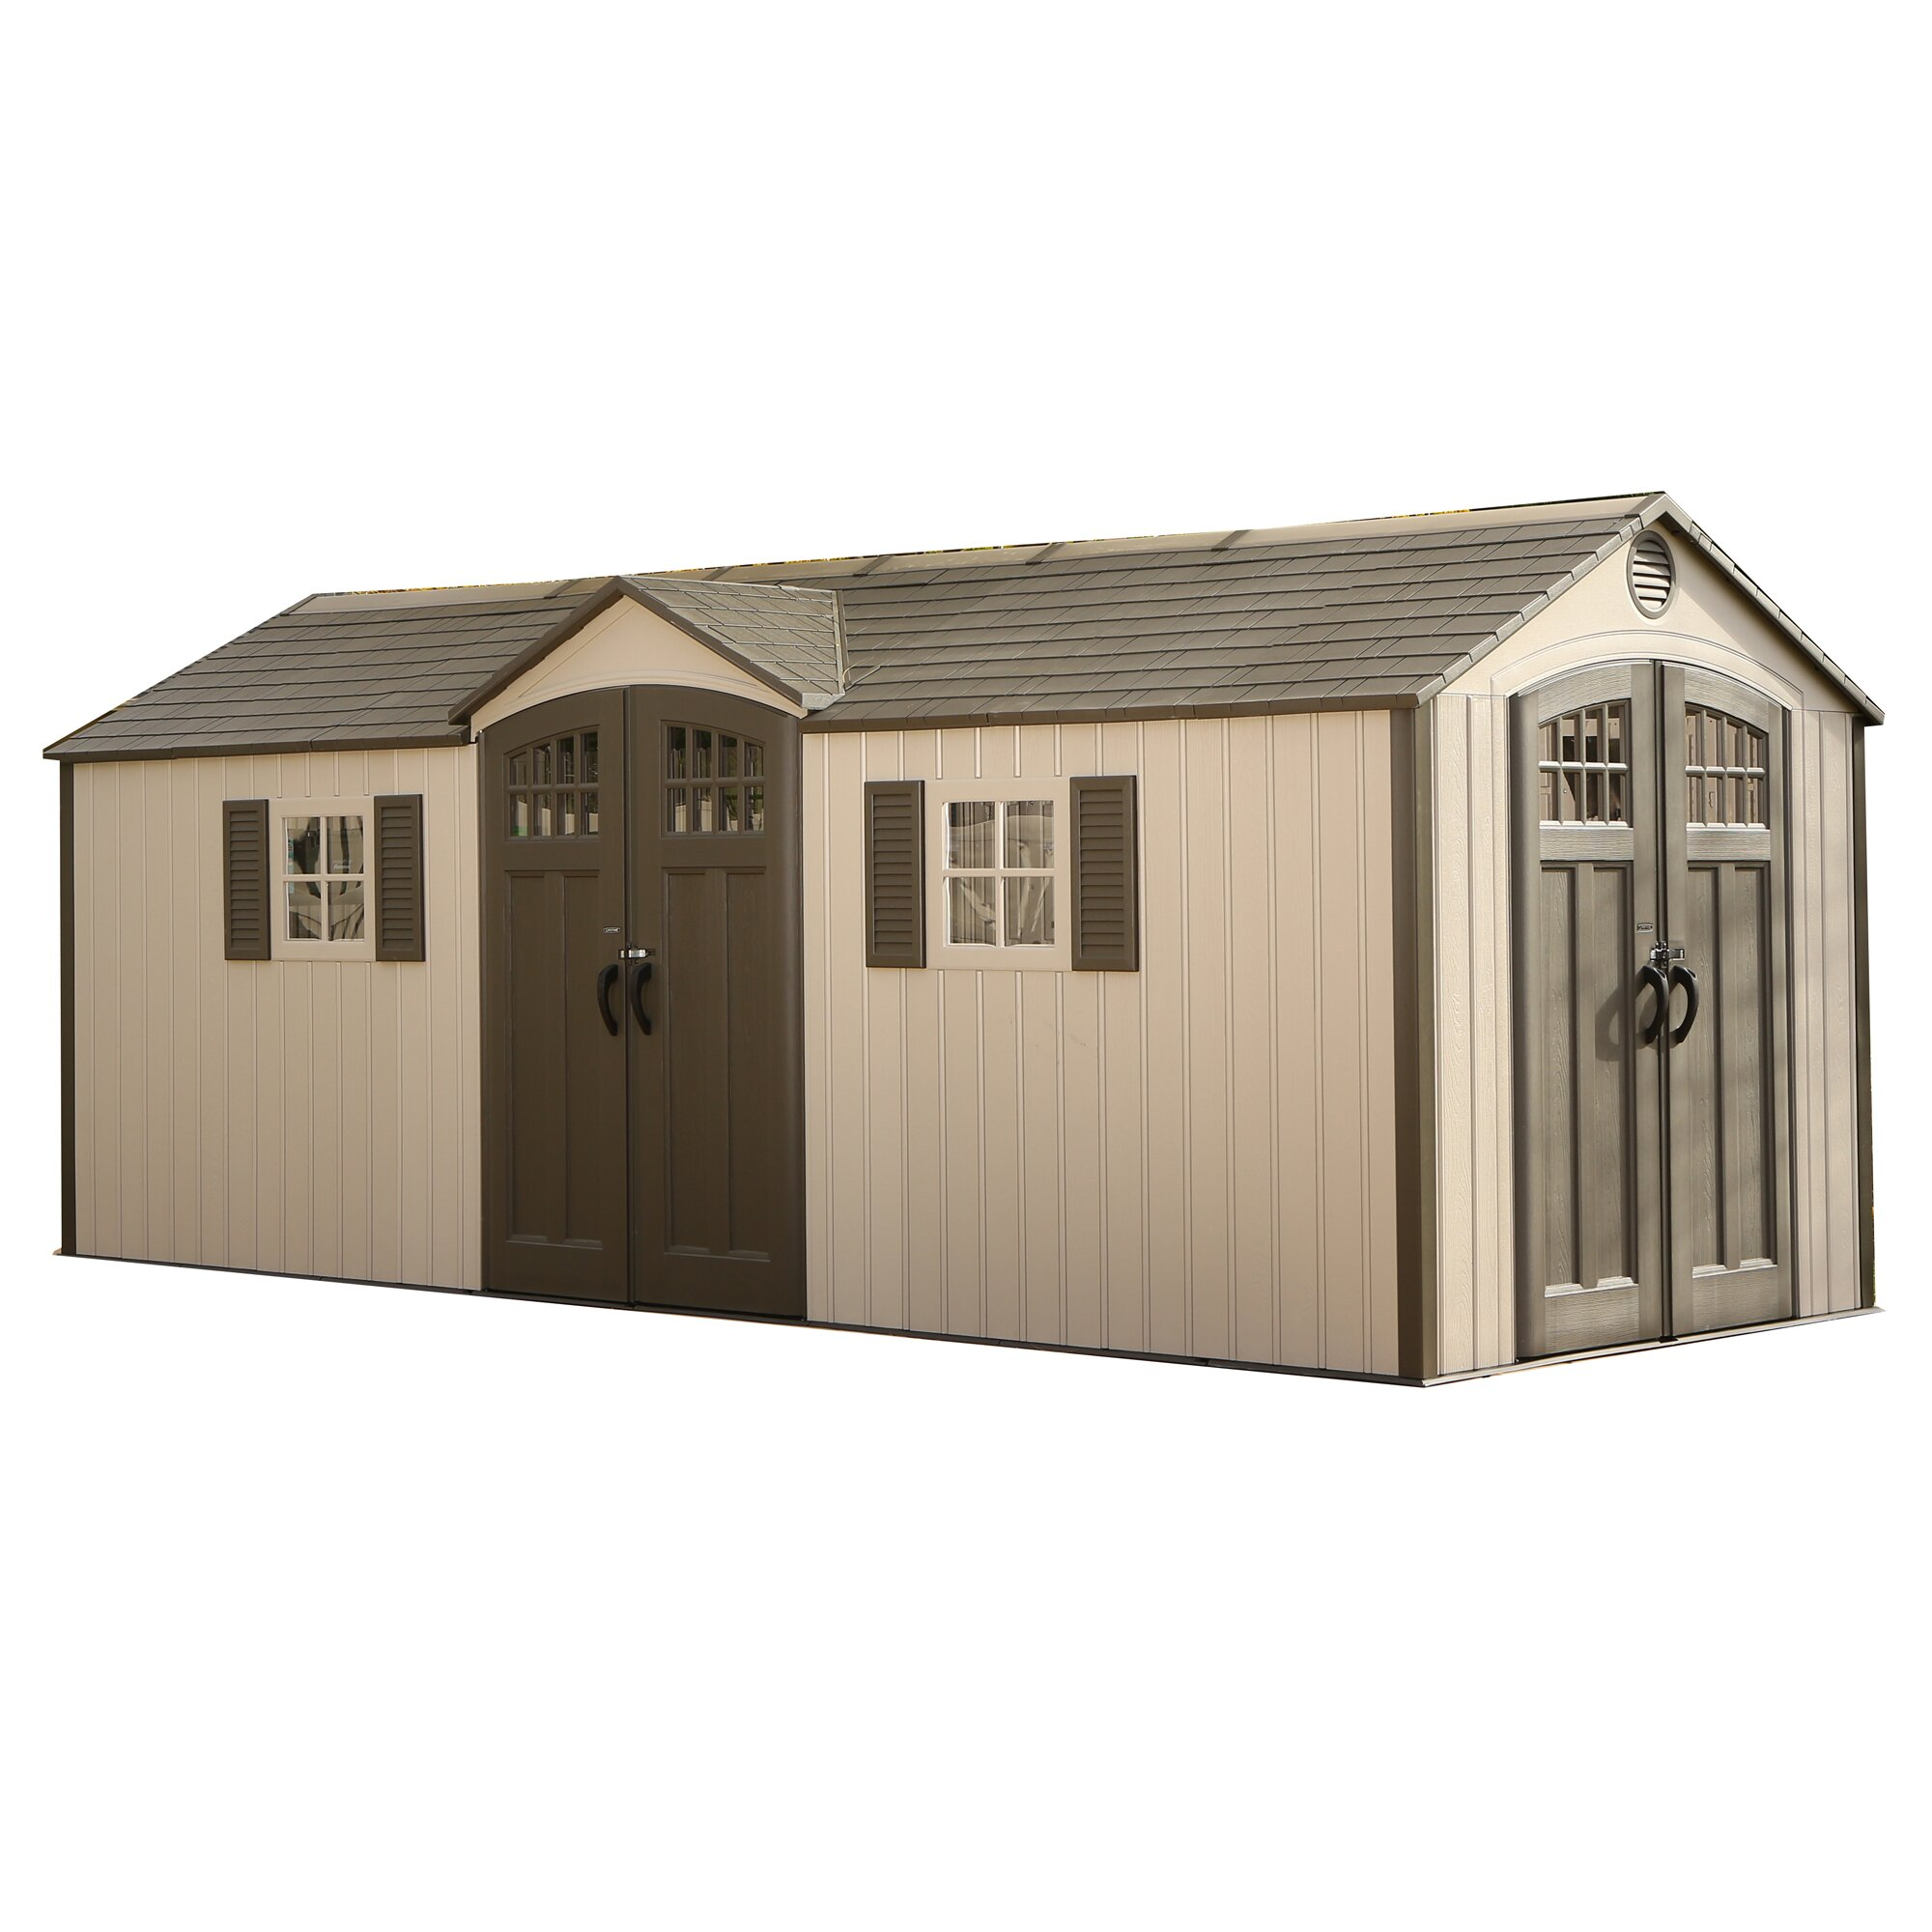 Lifetime 20 Ft W X 8 Ft D Garden Shed Amp Reviews Wayfair